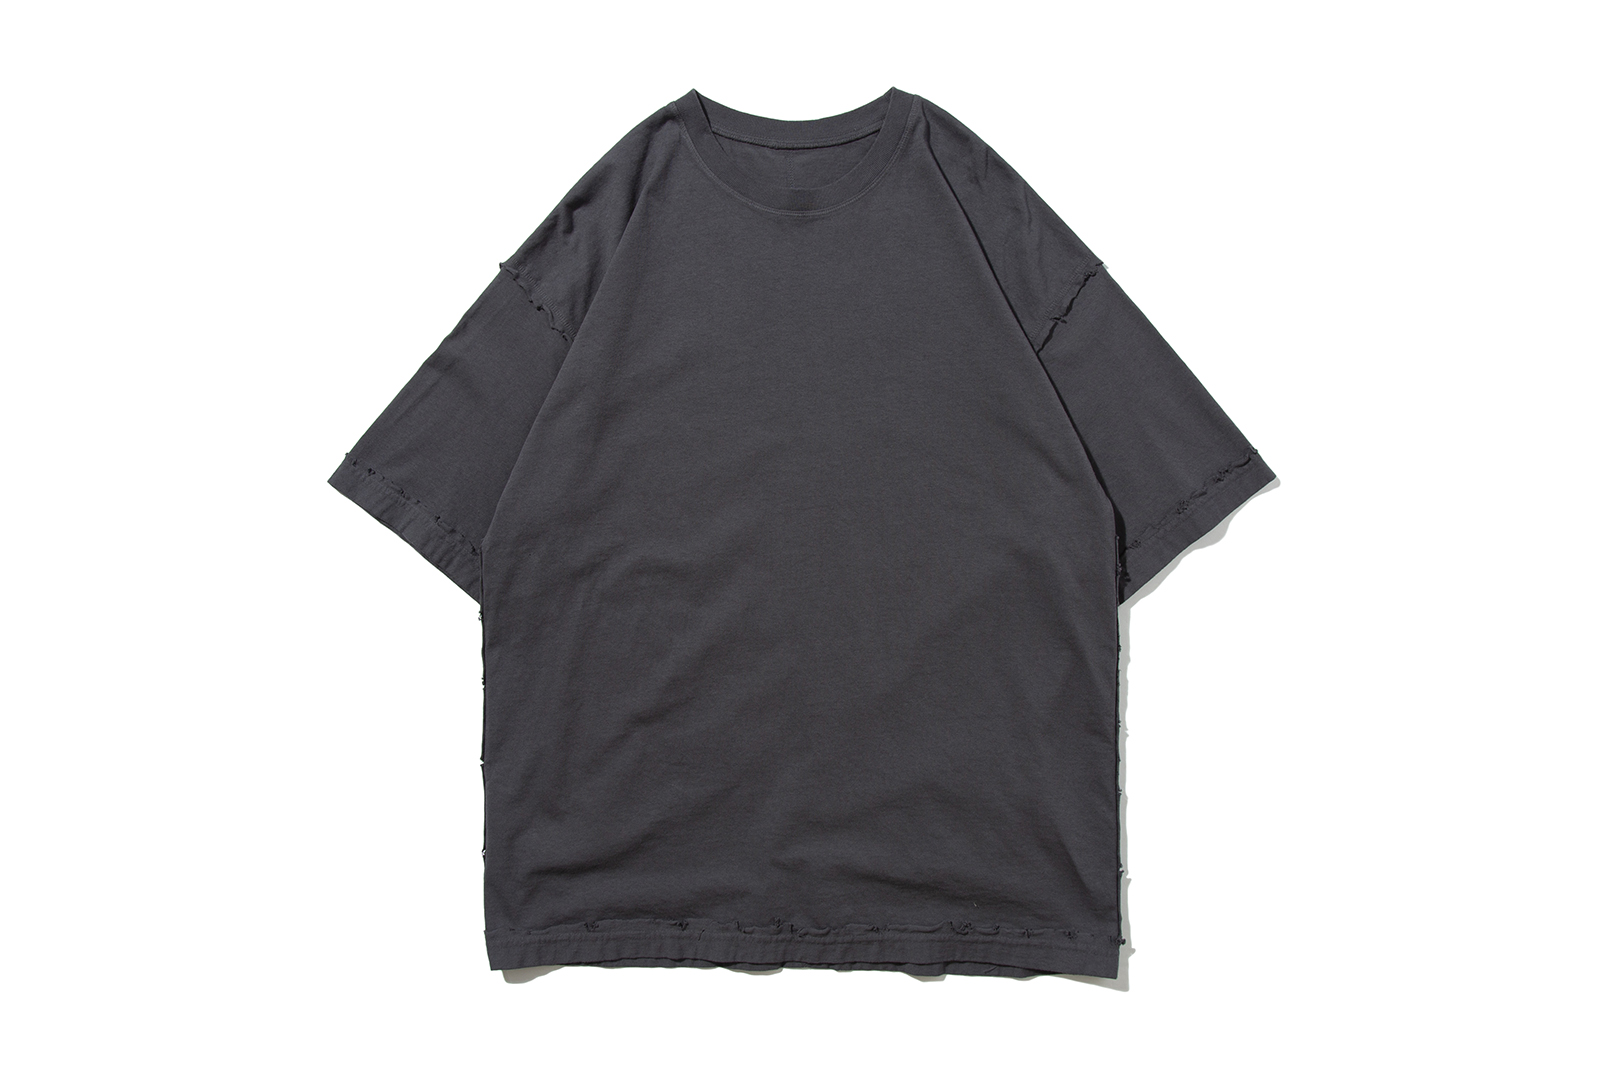 inside-out-nu-tee-charcoal_p2